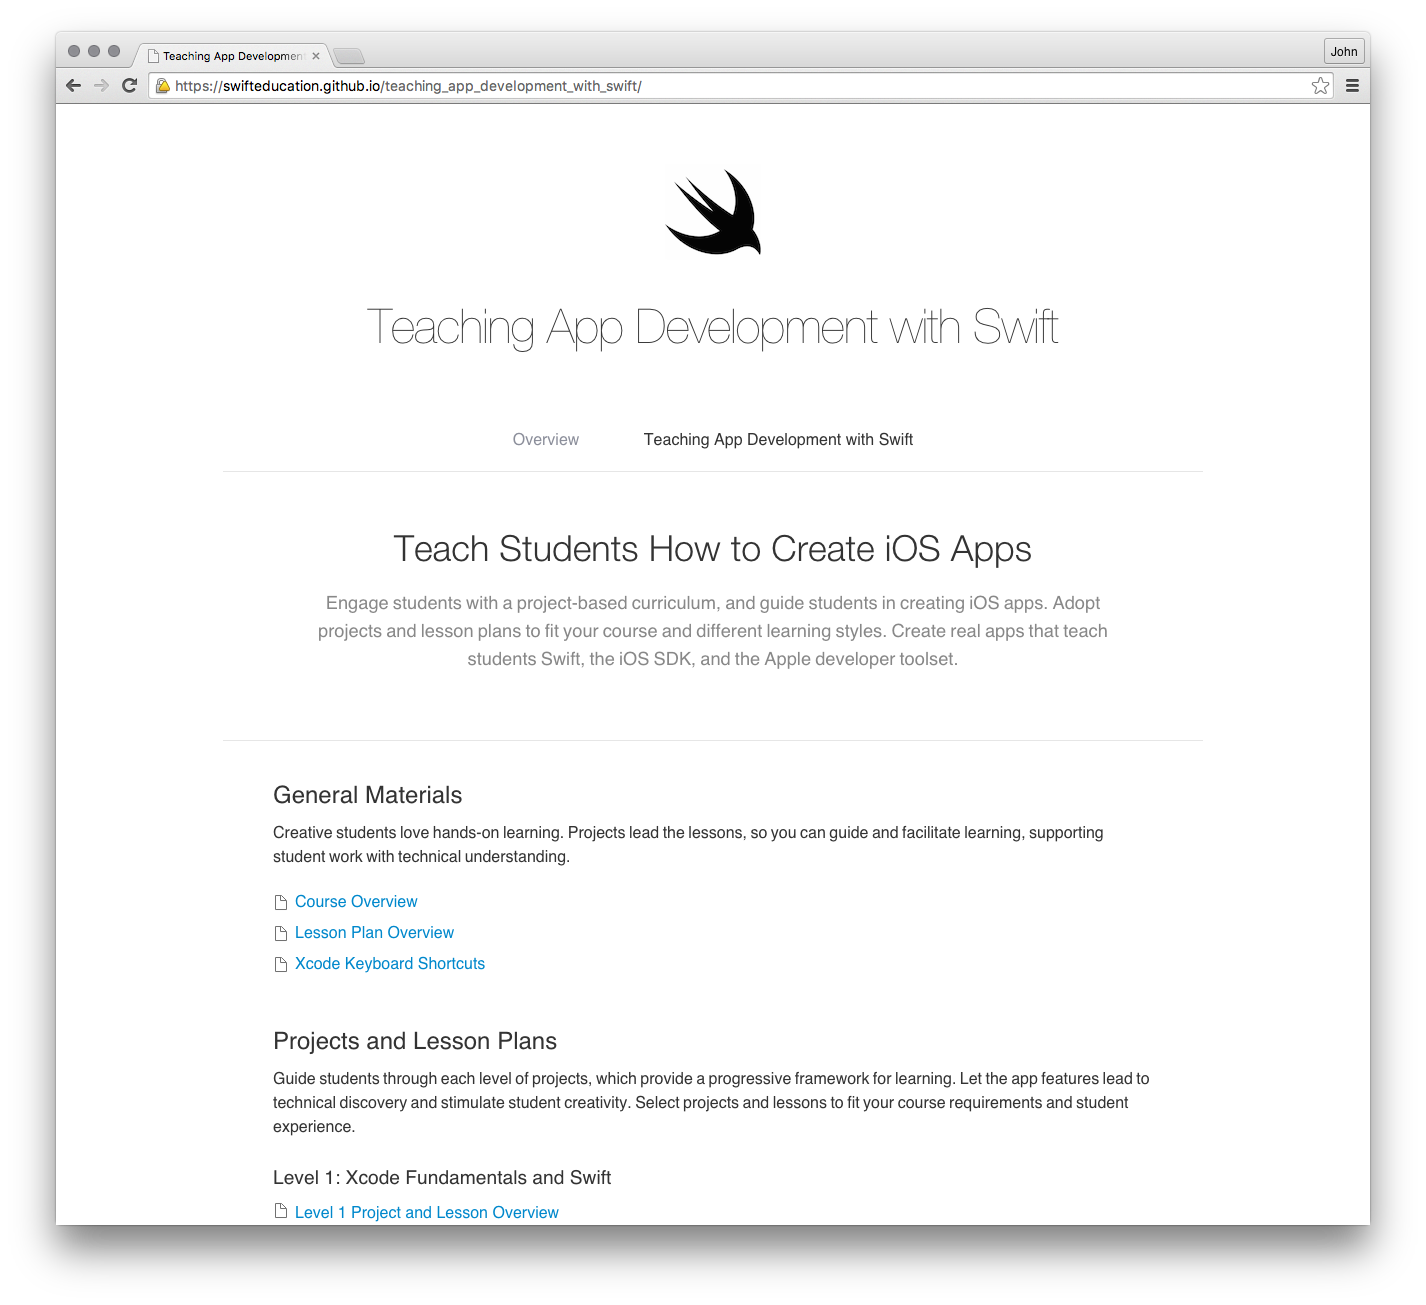 Apple has published a great free learn to code course for